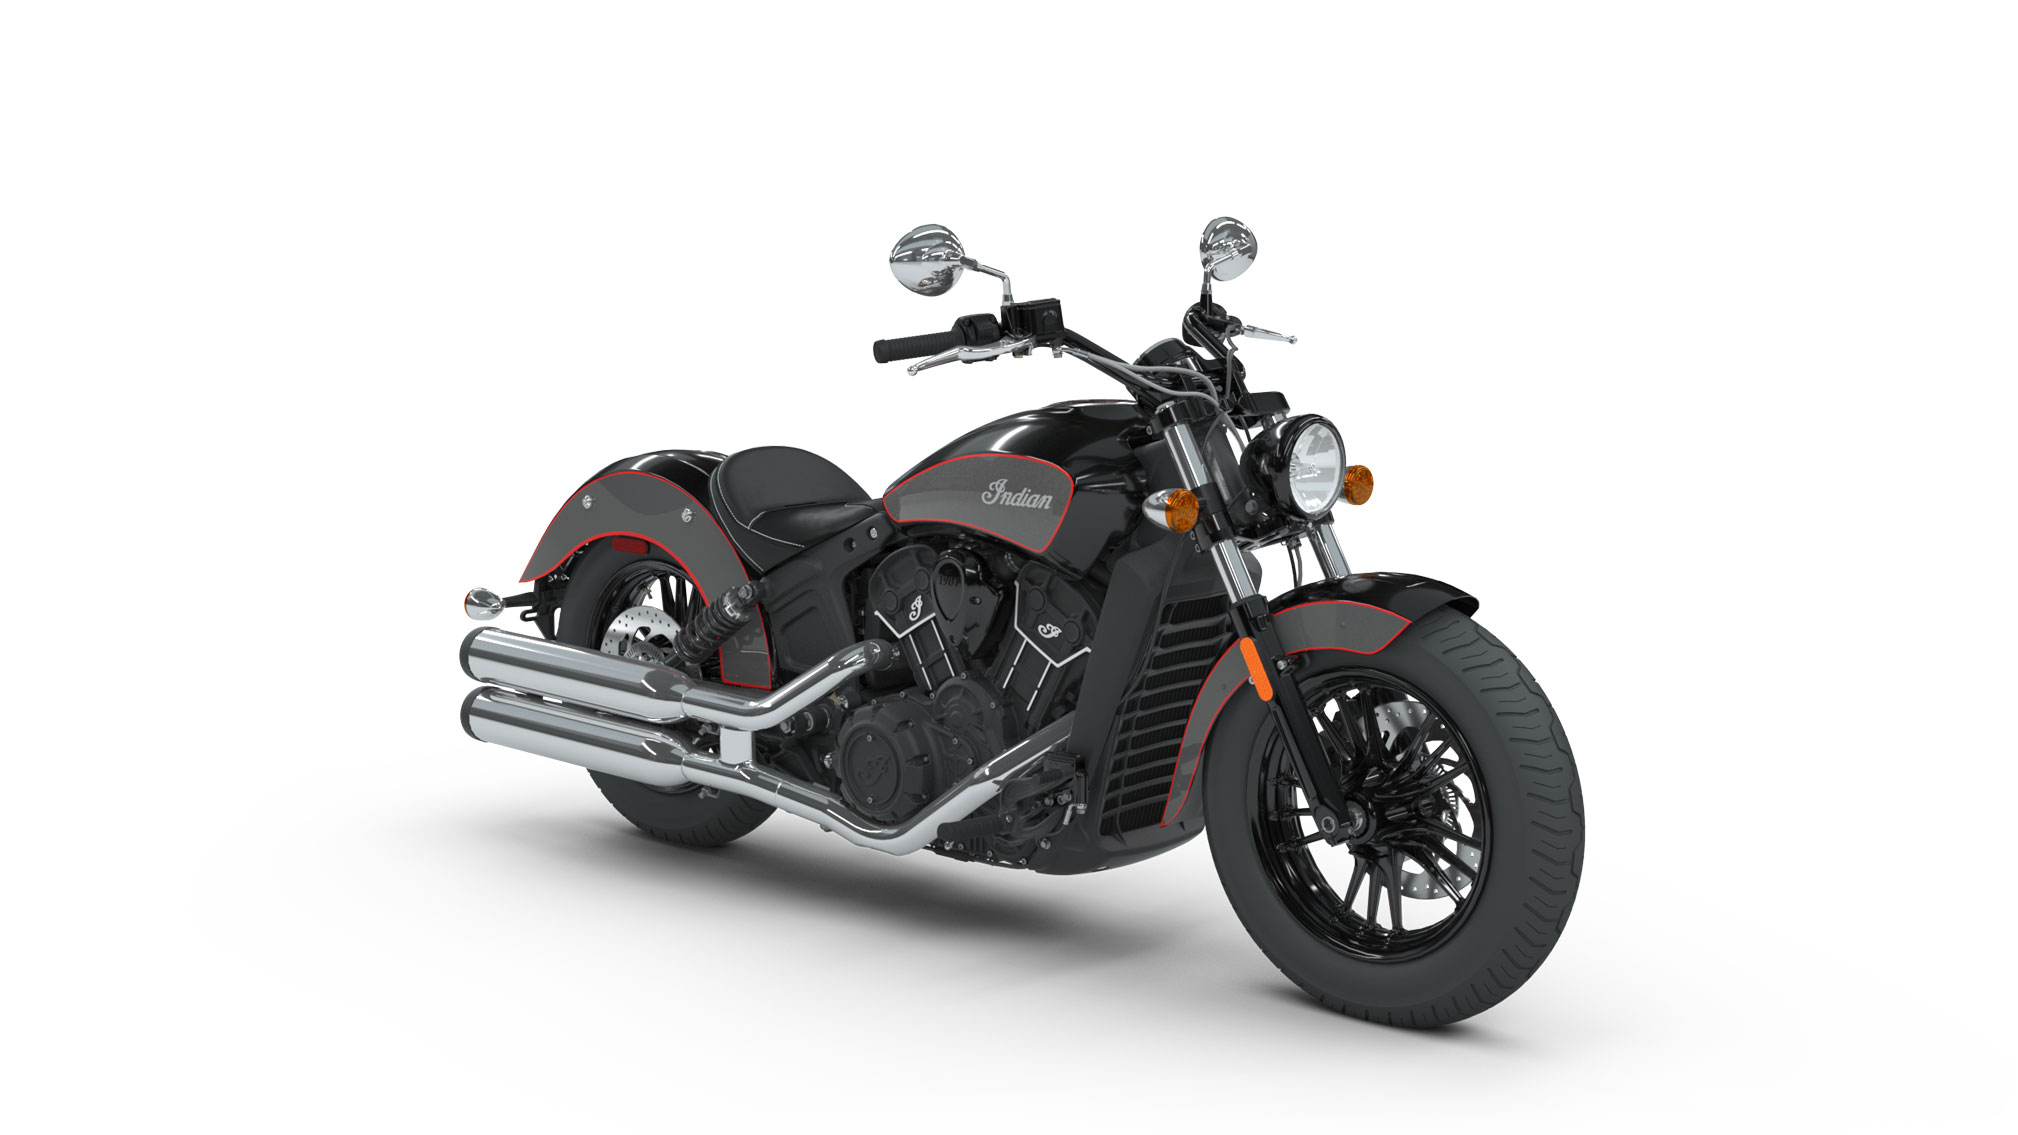 2018-Indian-Scout-Sixty